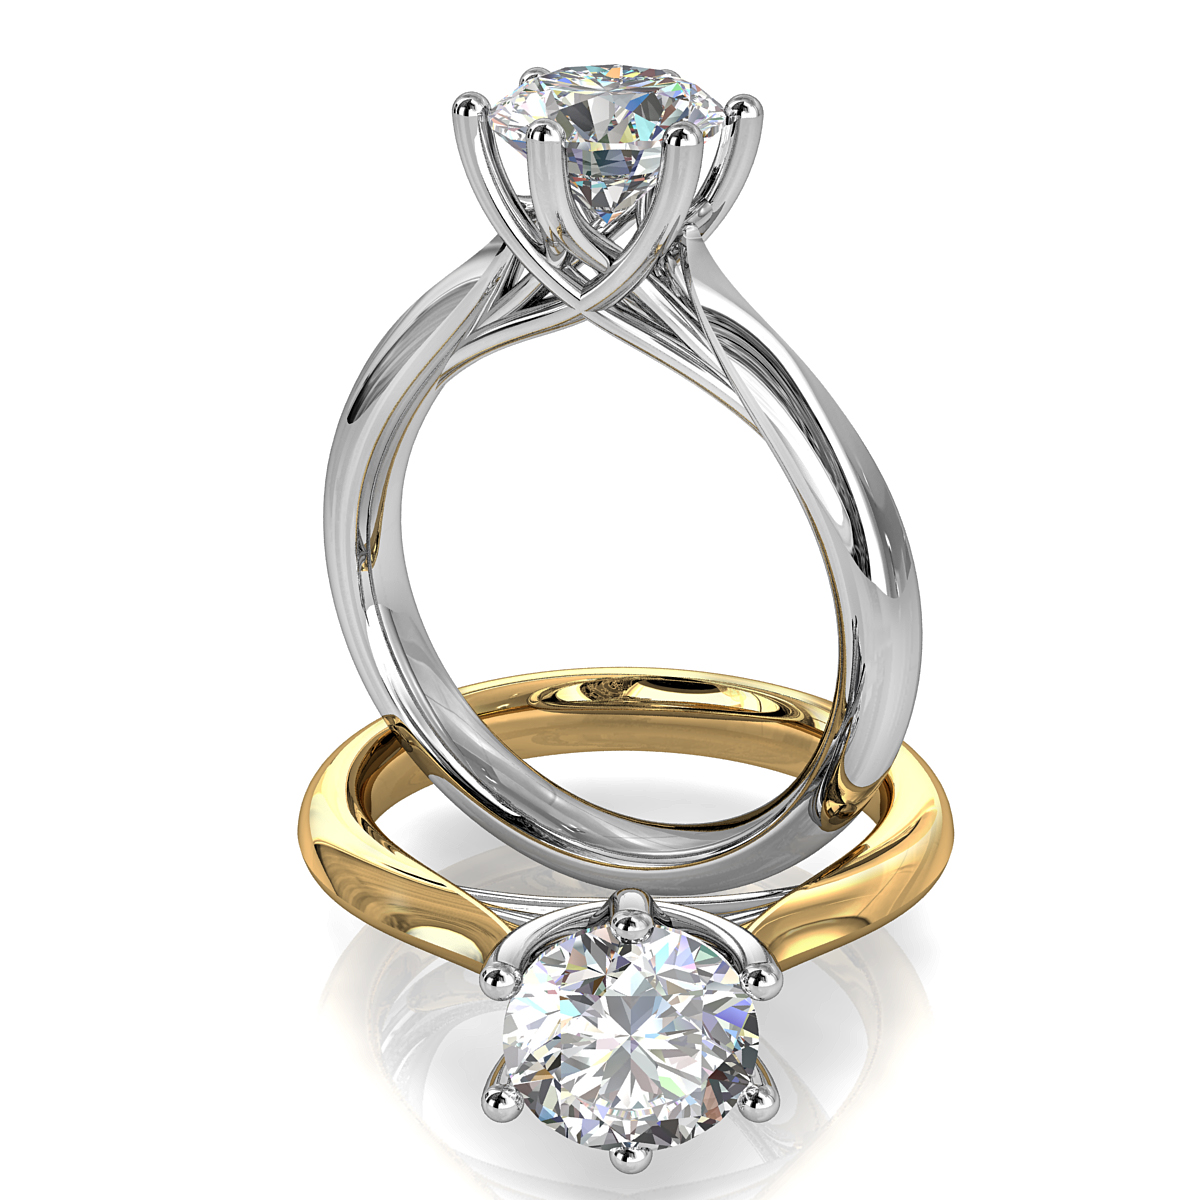 Round Brilliant Cut Solitaire Diamond Engagement Ring, 6 Button Claws on Rounded Tapered Band with Lotus Undersweep Setting.